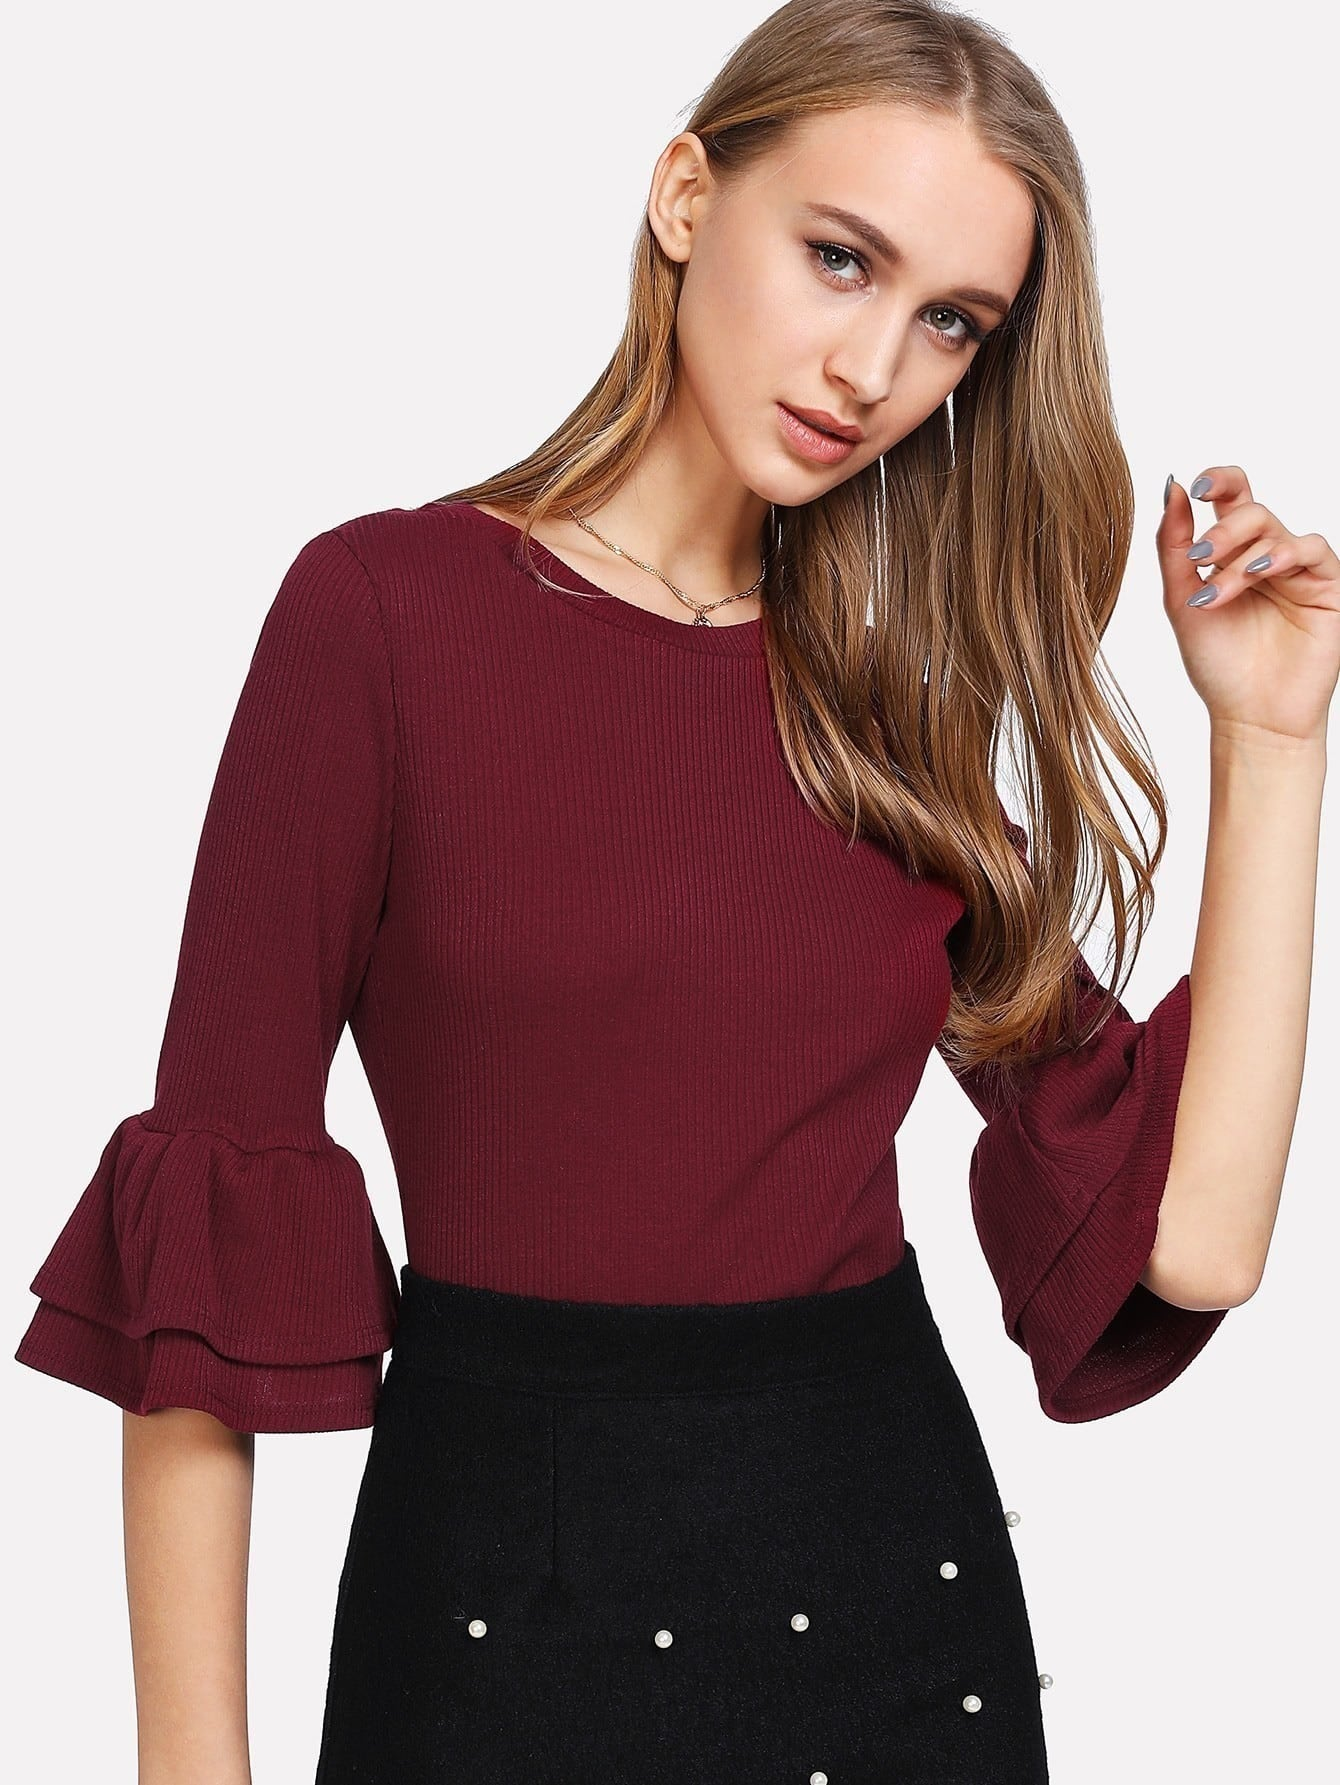 Flounce Sleeve Rib Knit Solid Top blouse171201705